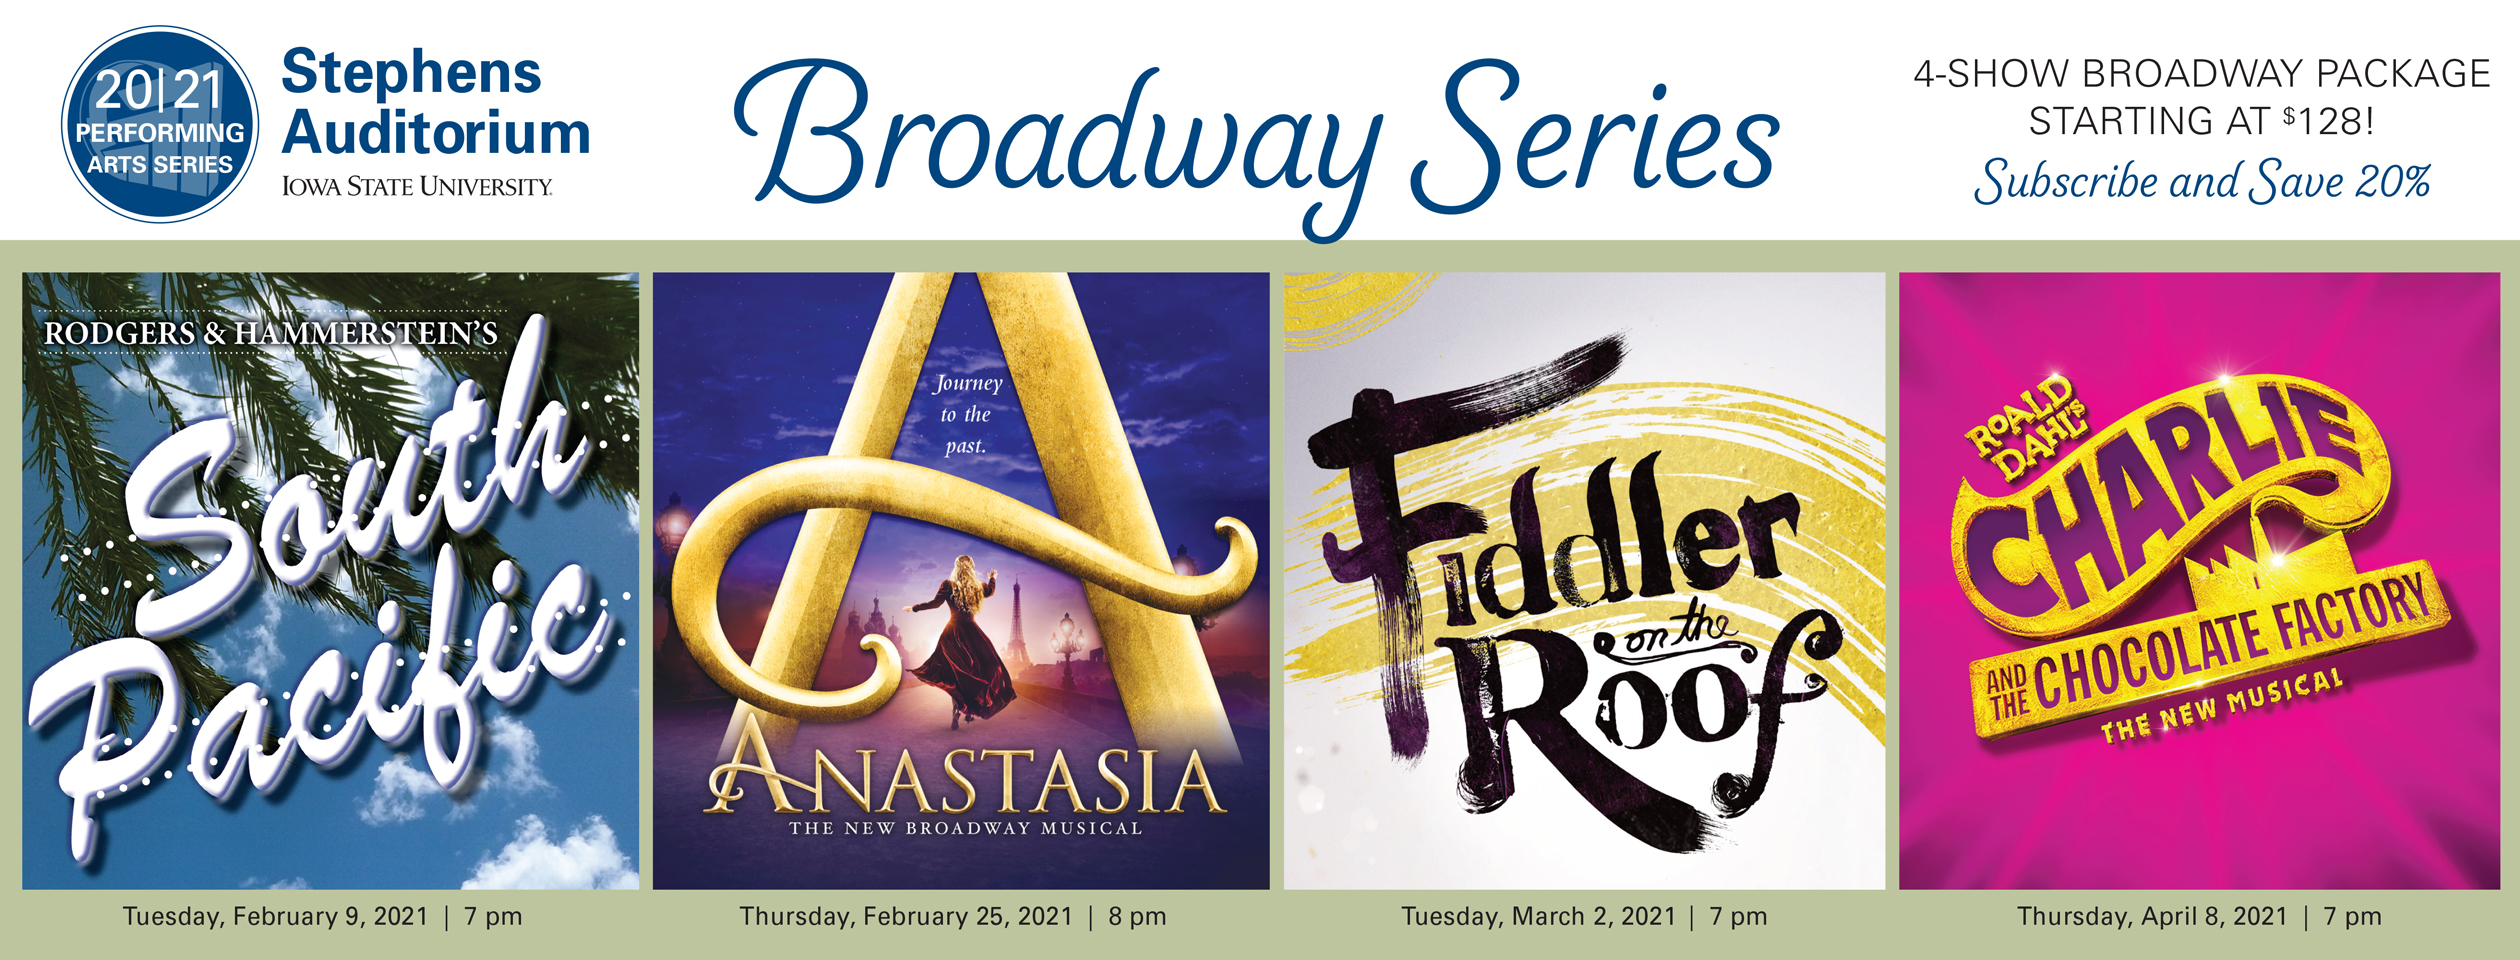 Stephens Auditorium Broadway Series Package